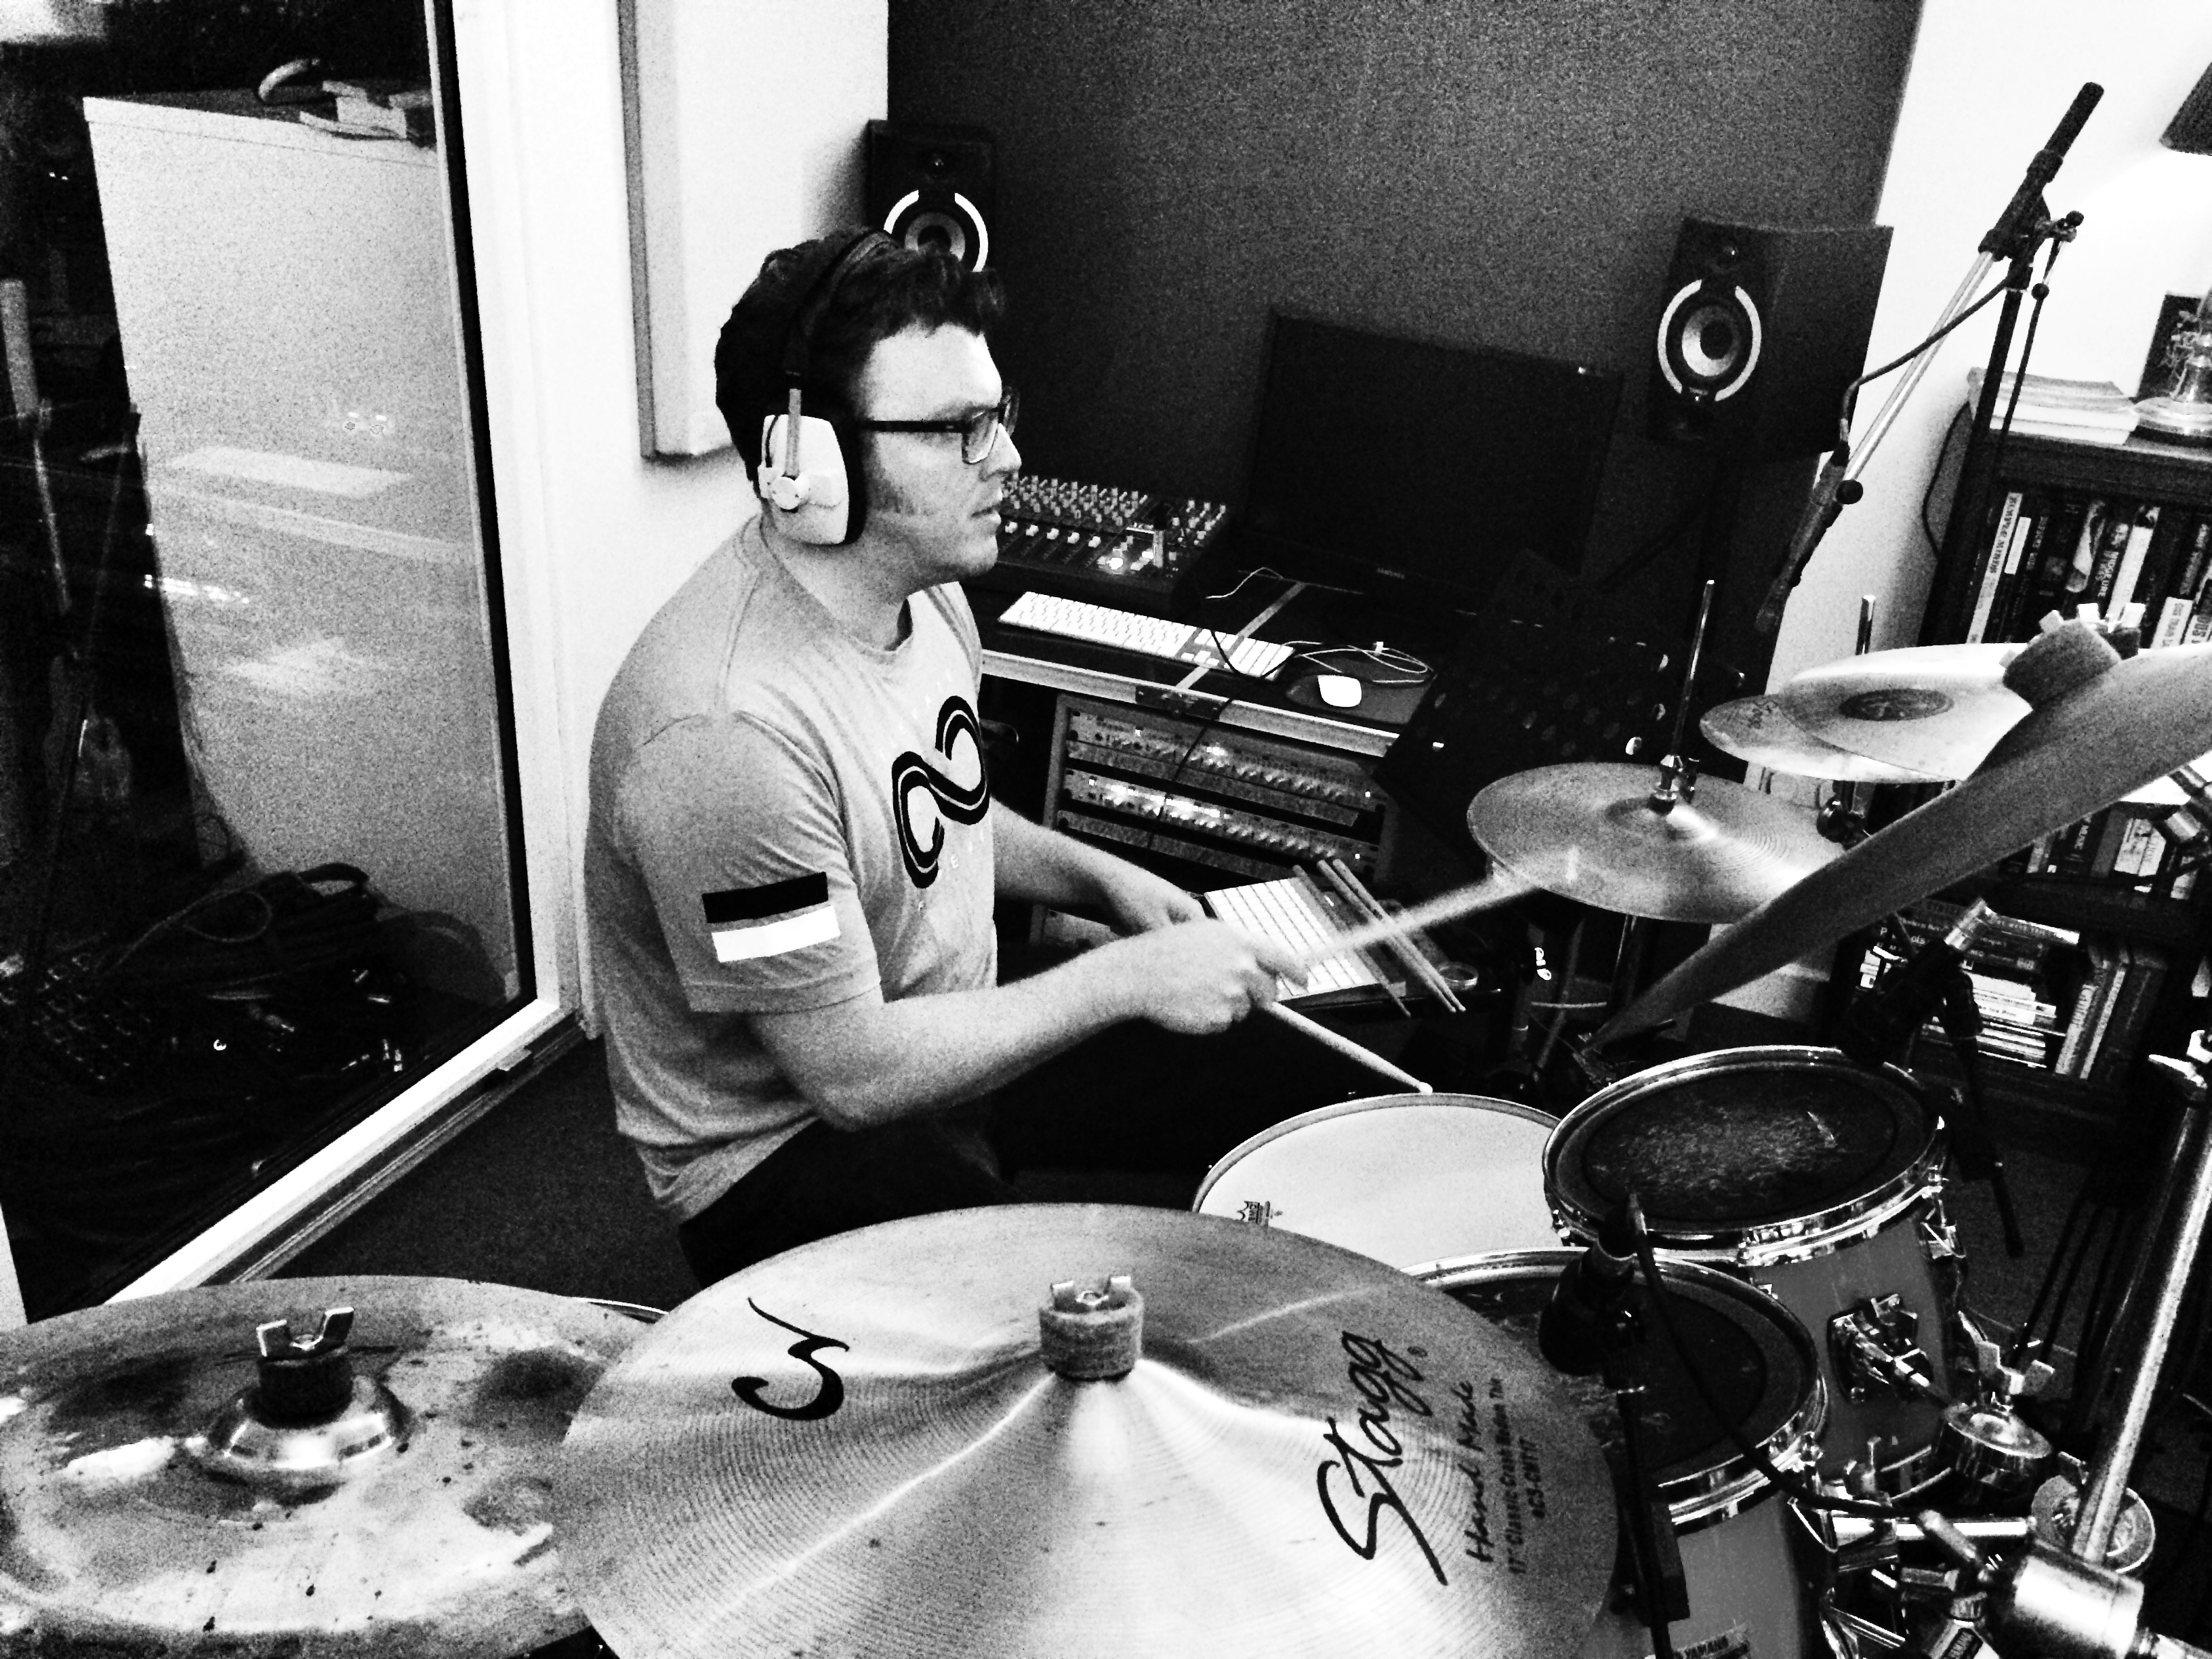 Matt Shearer drumming at NJA Audio Productions